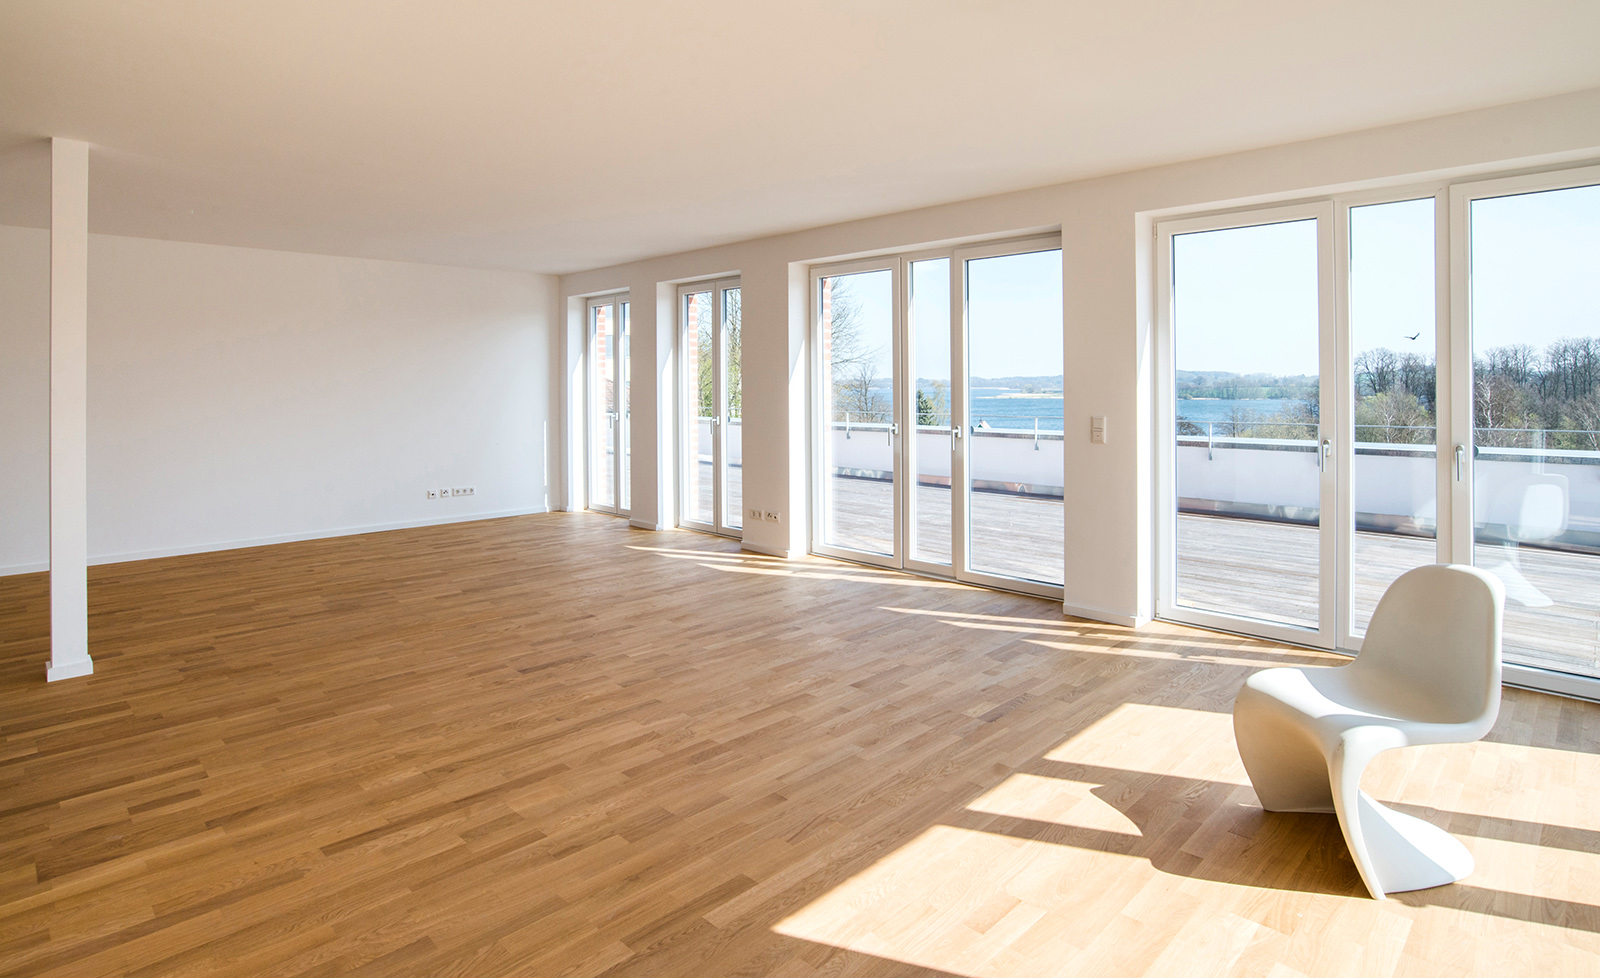 Ds immobilien penthouse wohnung am gro en segeberger see for Wohnung immobilien